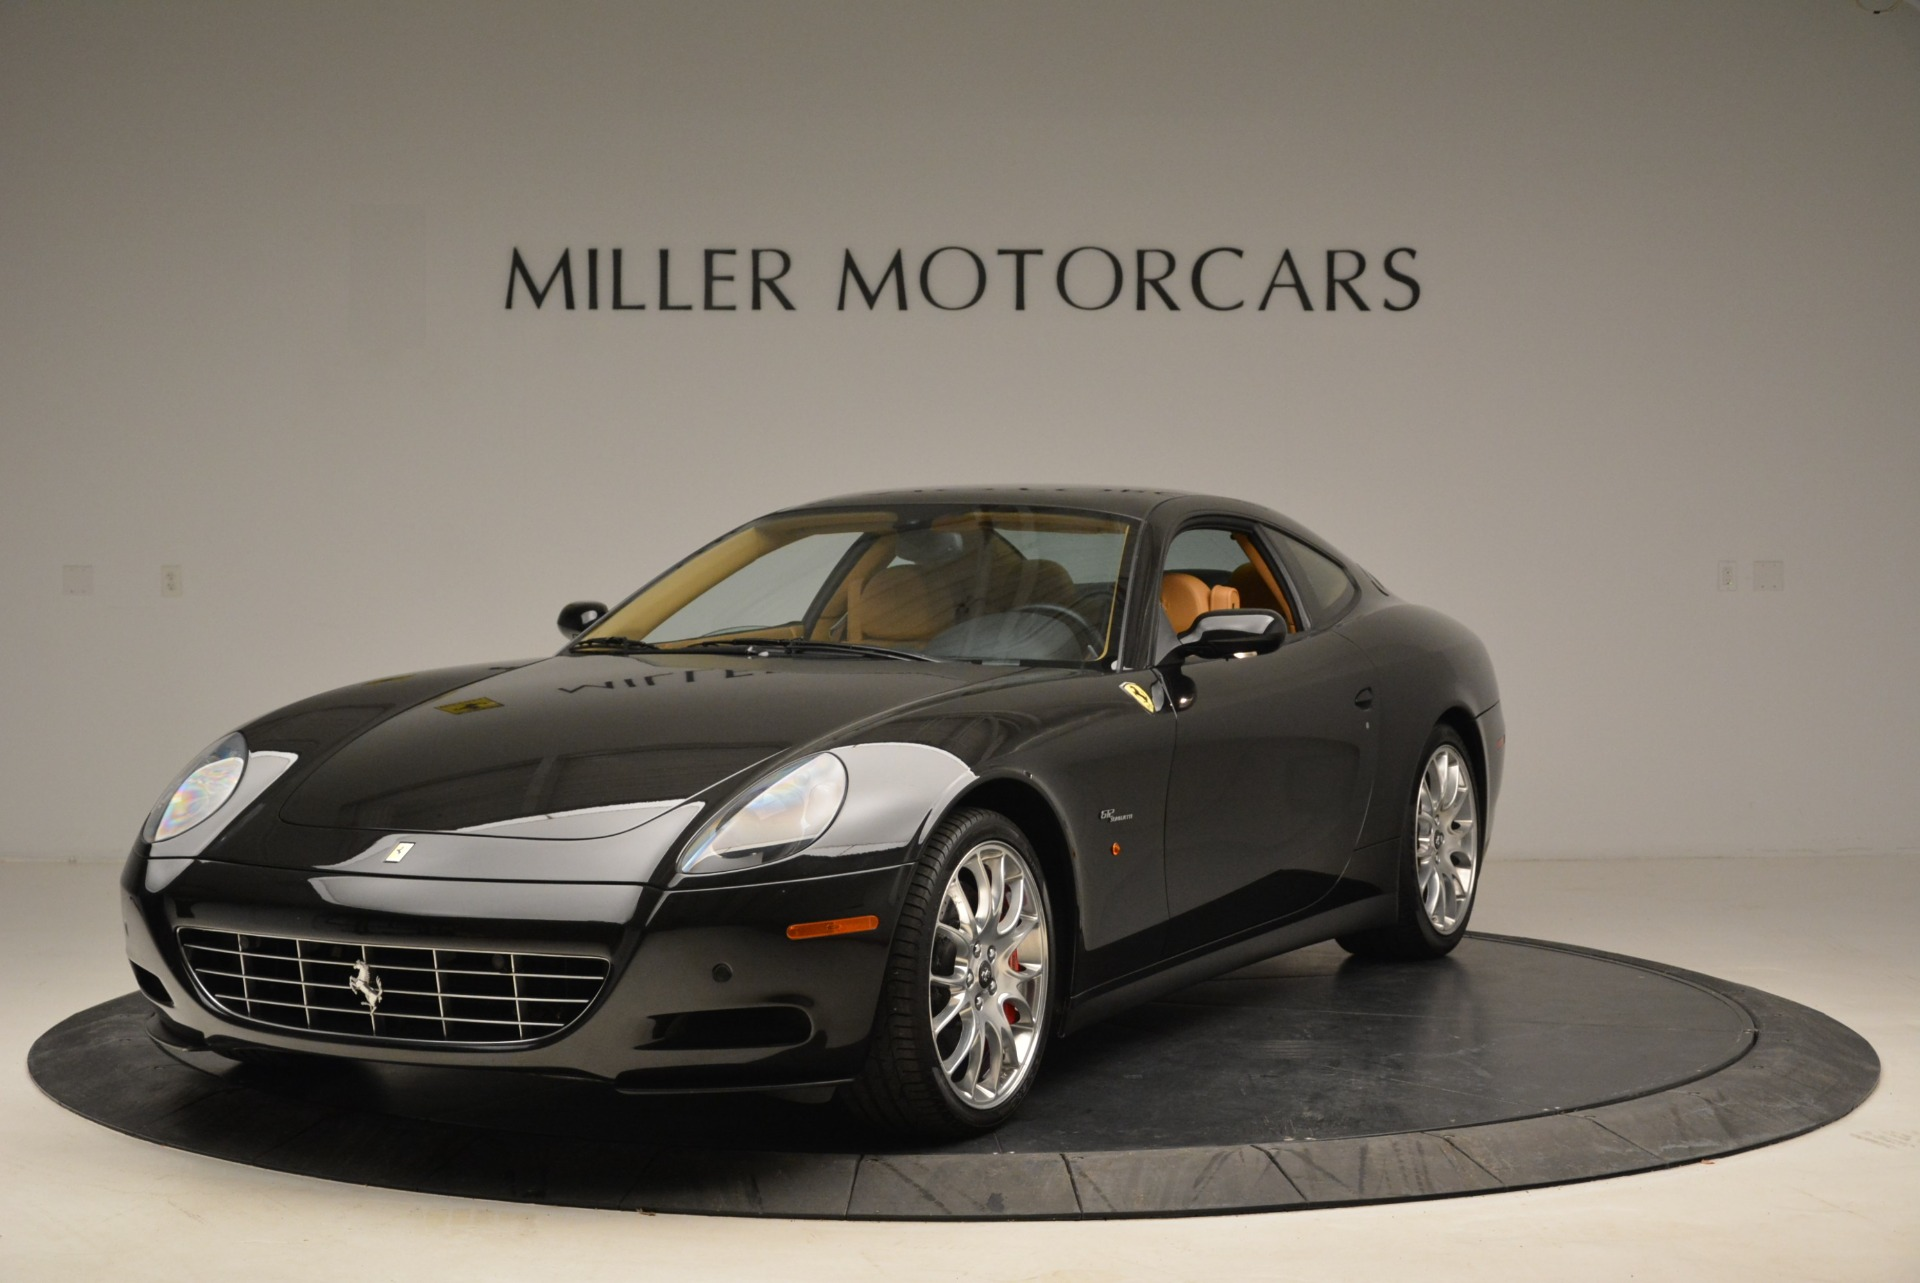 Used 2008 Ferrari 612 Scaglietti OTO for sale Sold at Rolls-Royce Motor Cars Greenwich in Greenwich CT 06830 1